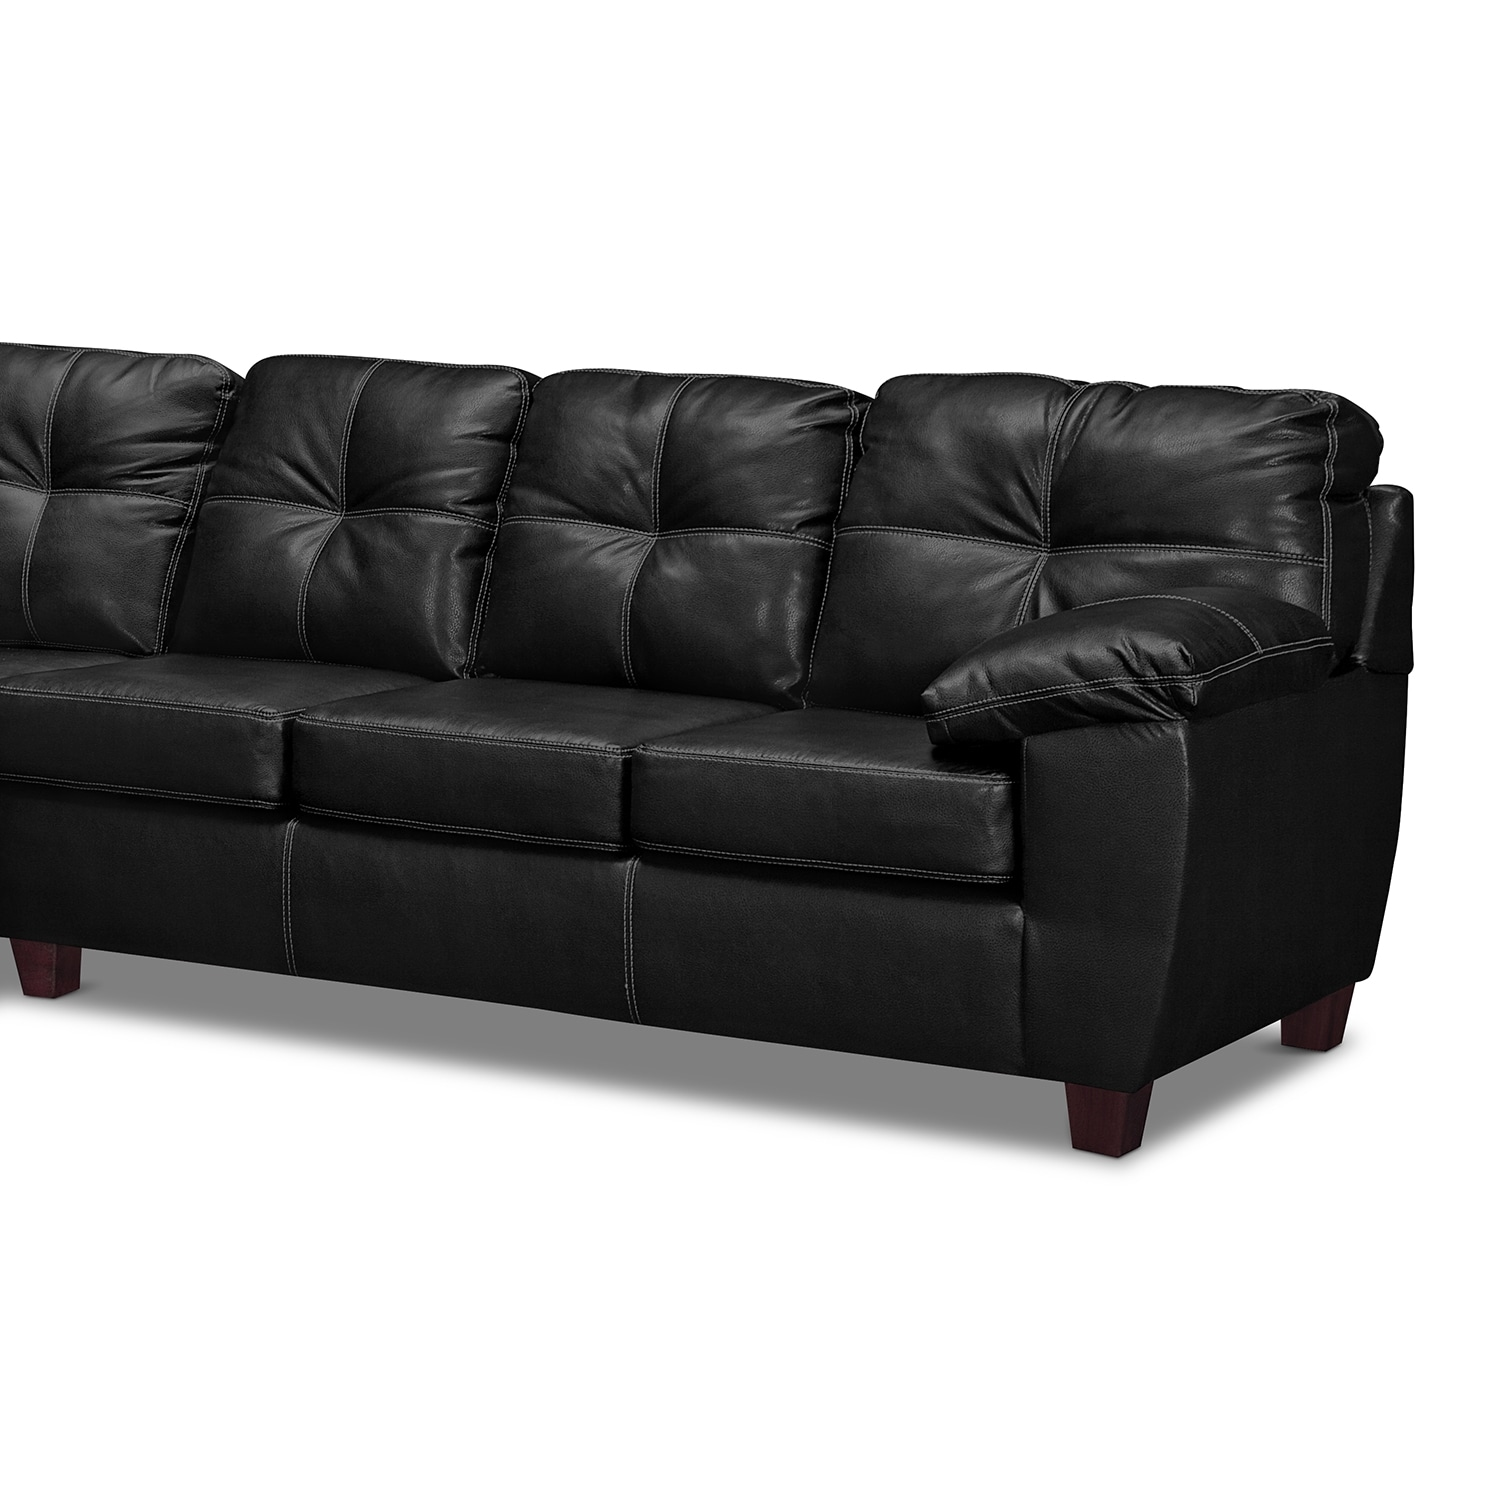 rialto leather 2 pc sectional with chaise value city. Black Bedroom Furniture Sets. Home Design Ideas